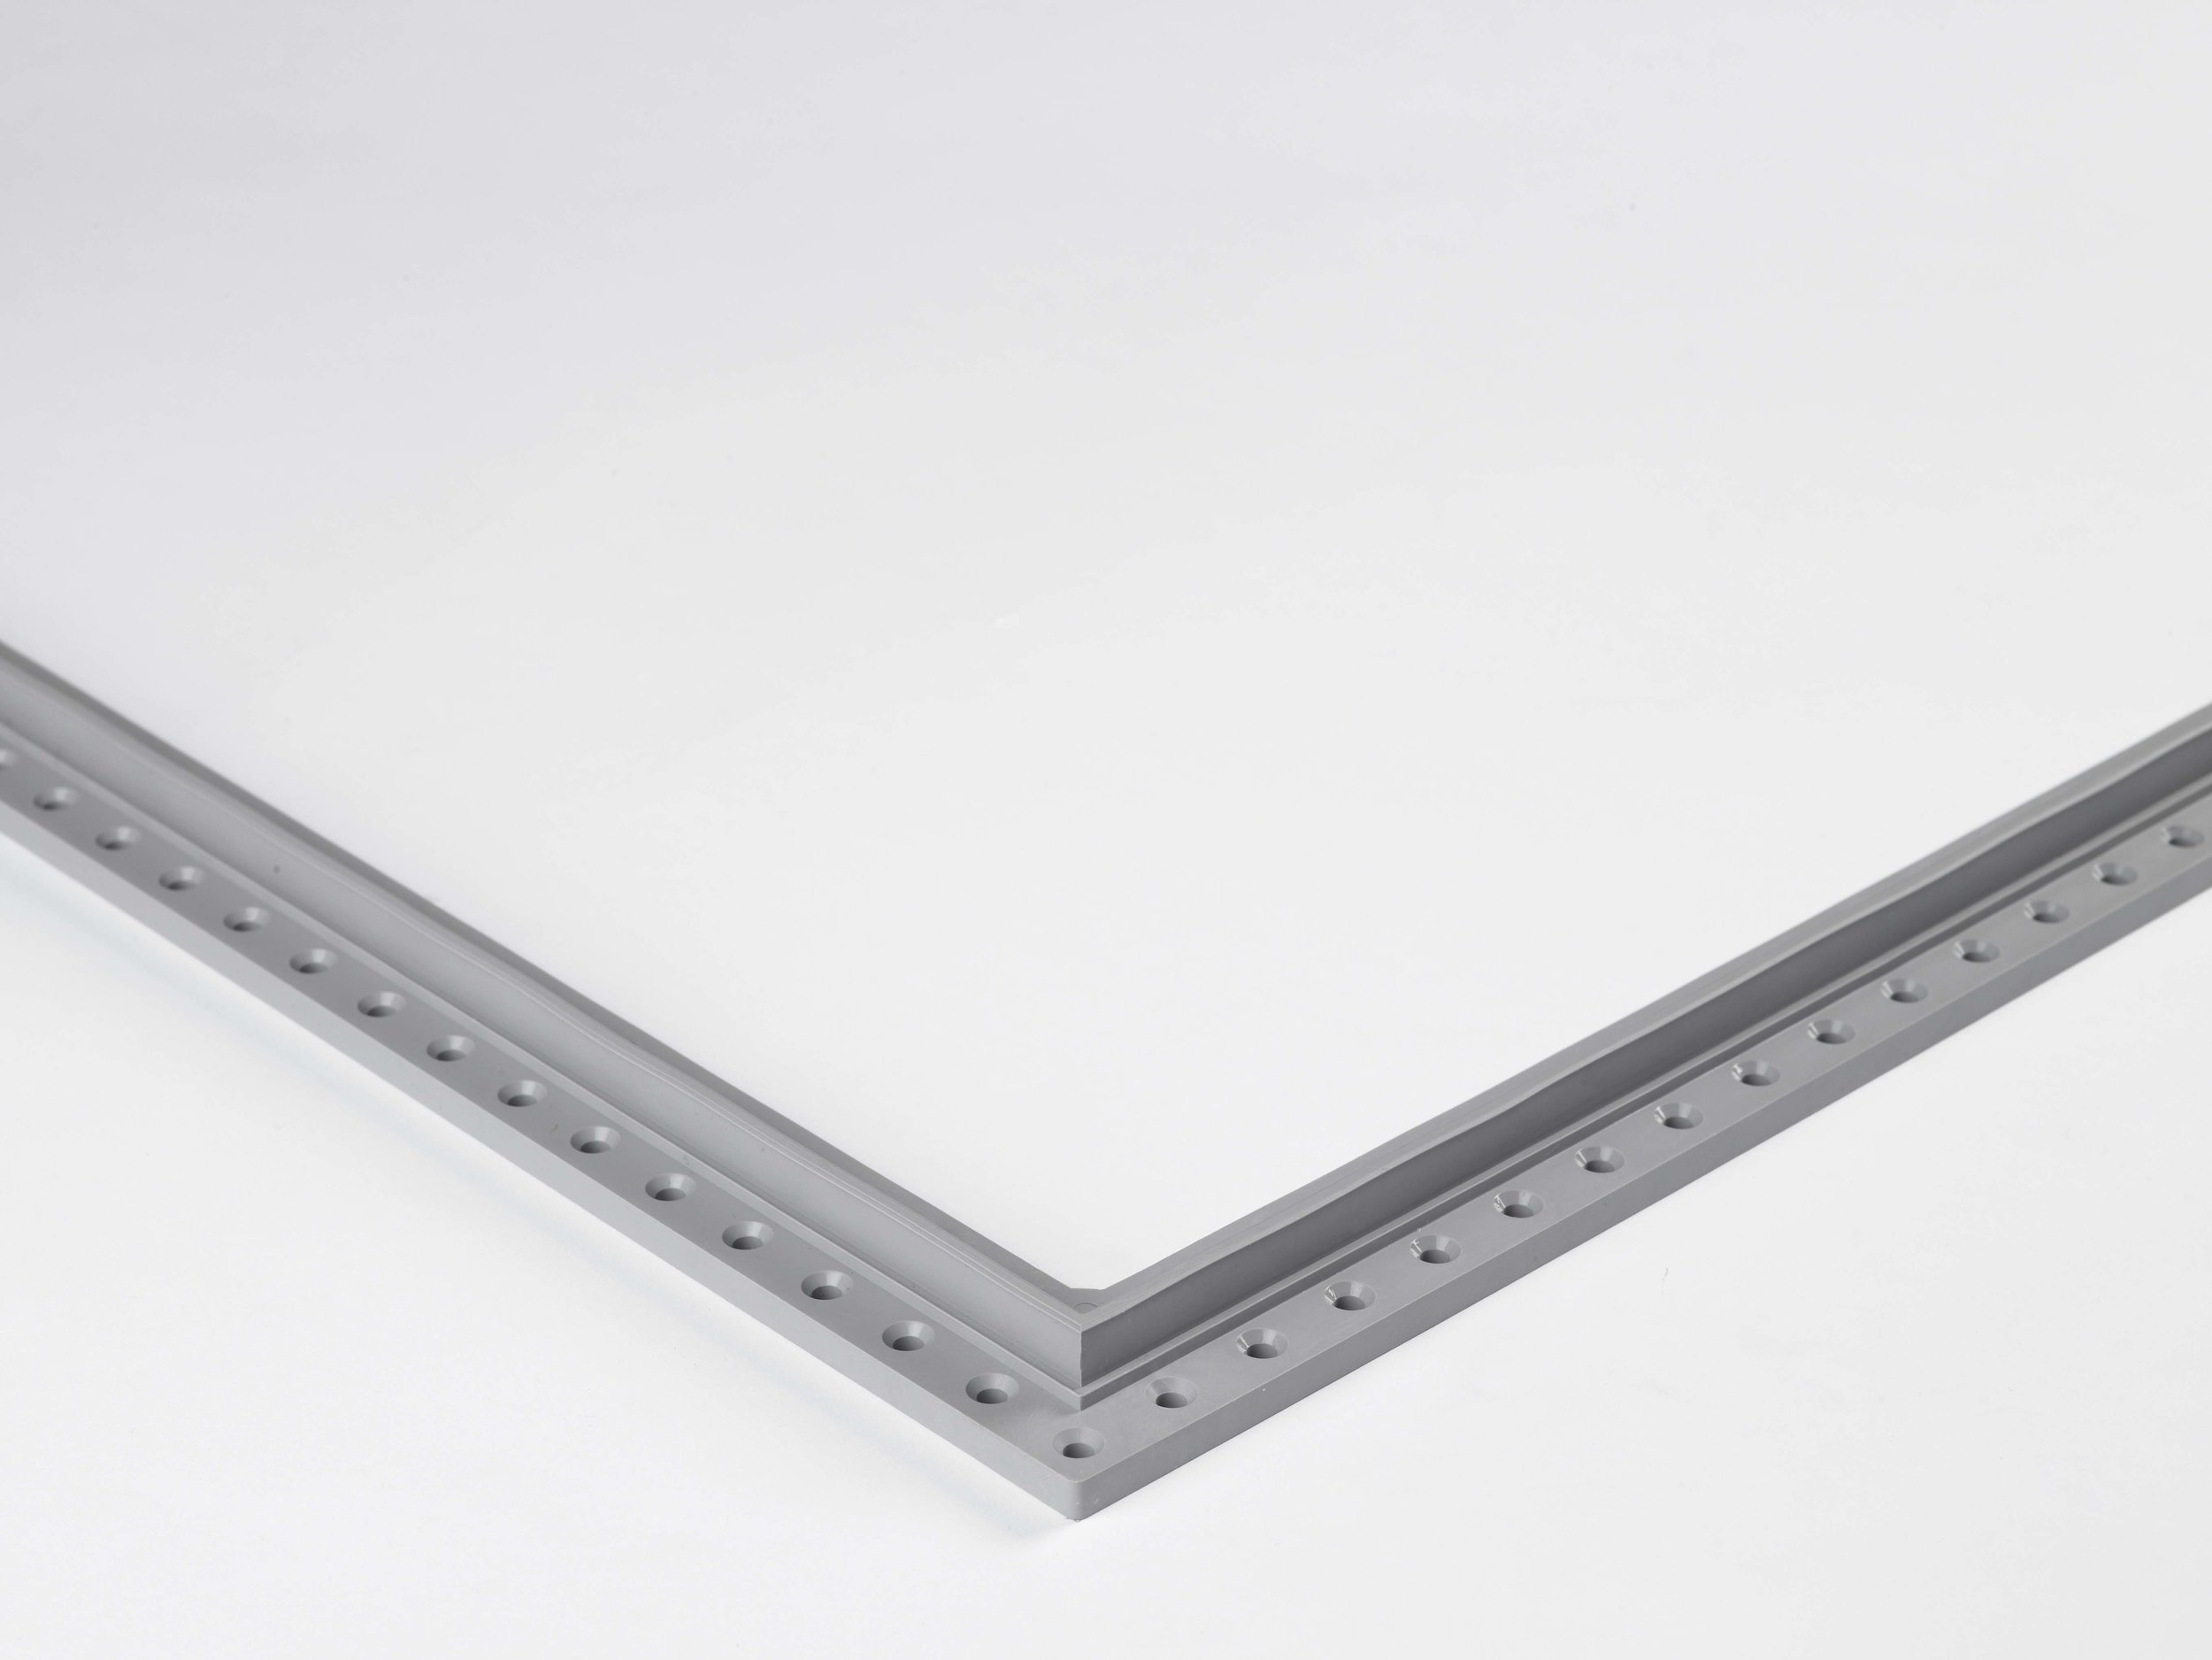 Versaflex® Porcelain Dry Lay tile combined connector and joint element